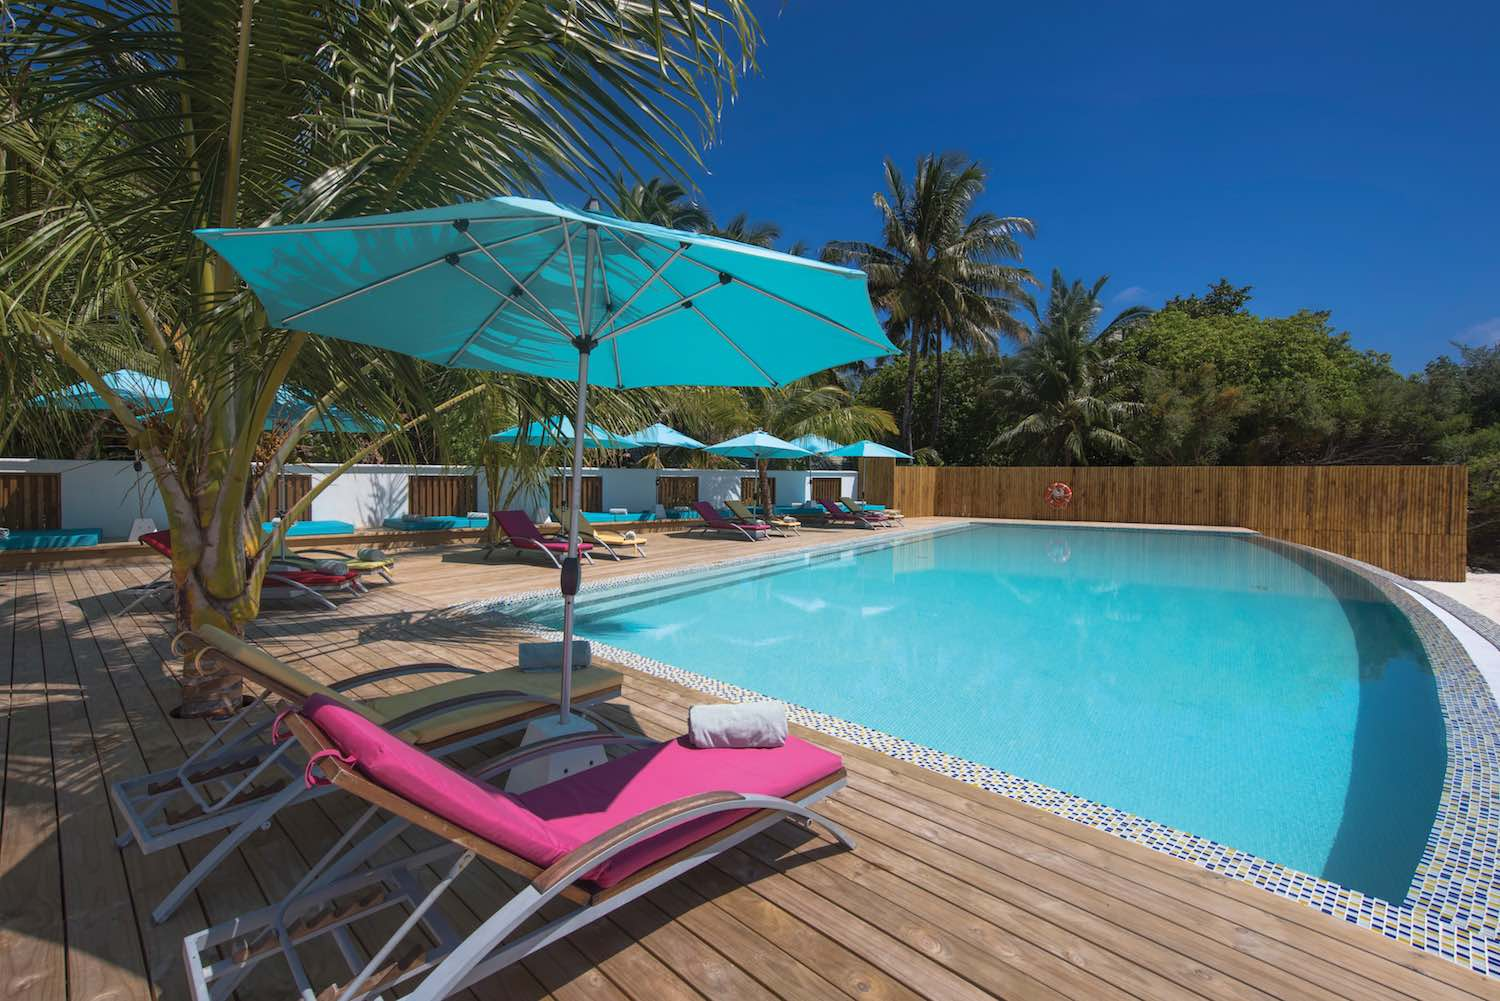 maldives-oblu-by-atmosphere-at-helengeli-adult-only-pool-3-holiday-honeymoon-vacation-invite-to-paradise.jpg